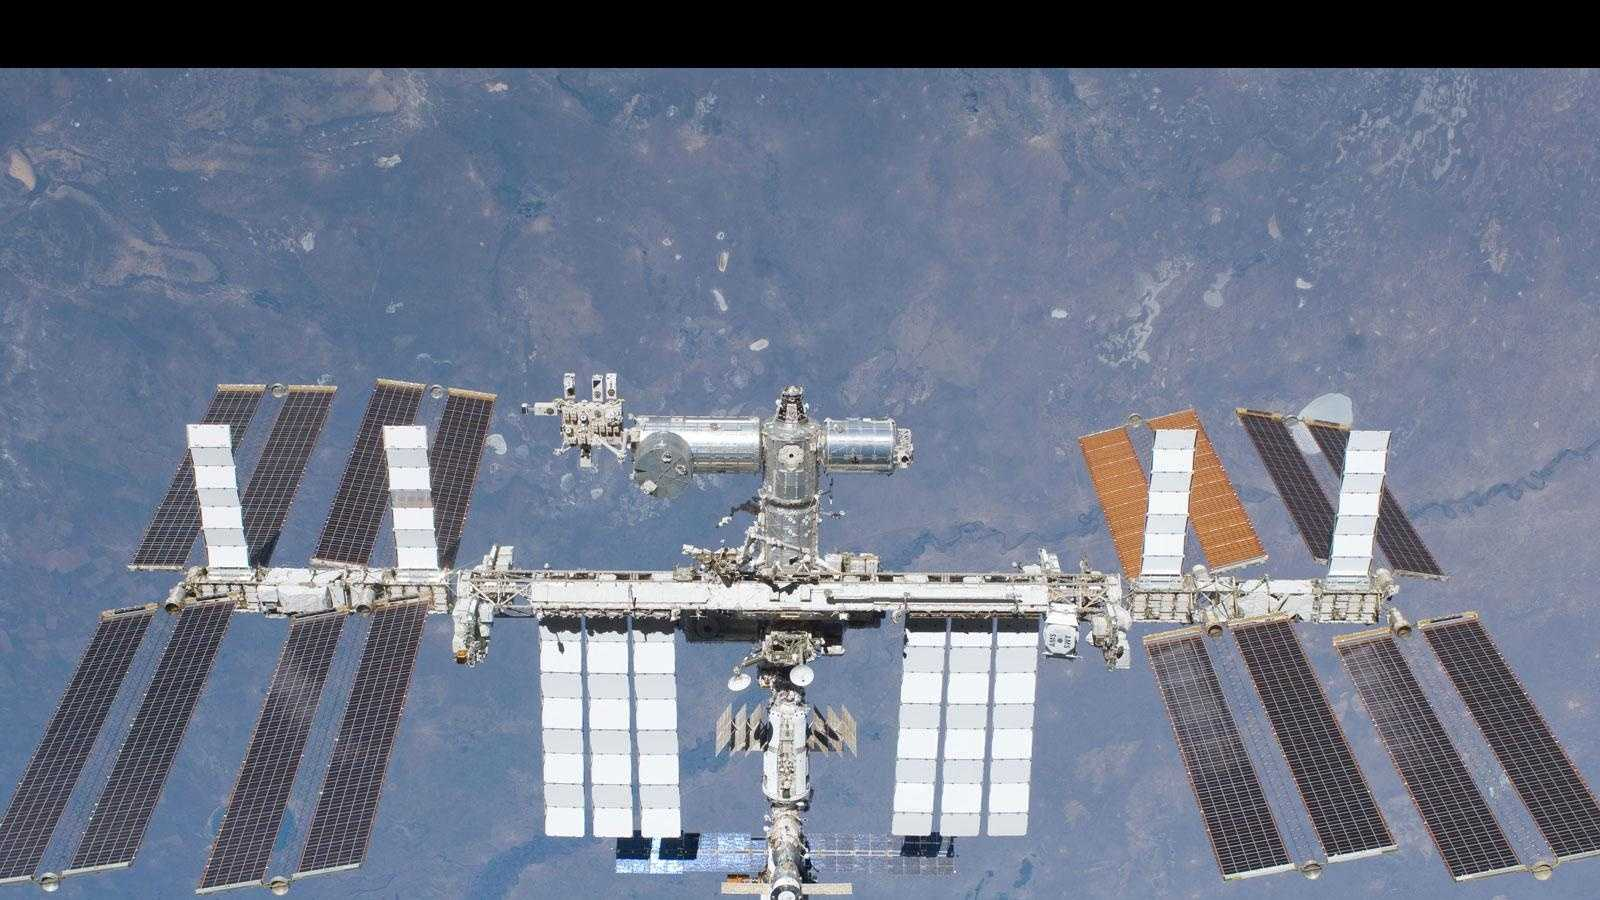 The International Space Station orbits the Earth around 18,000 miles per hour.